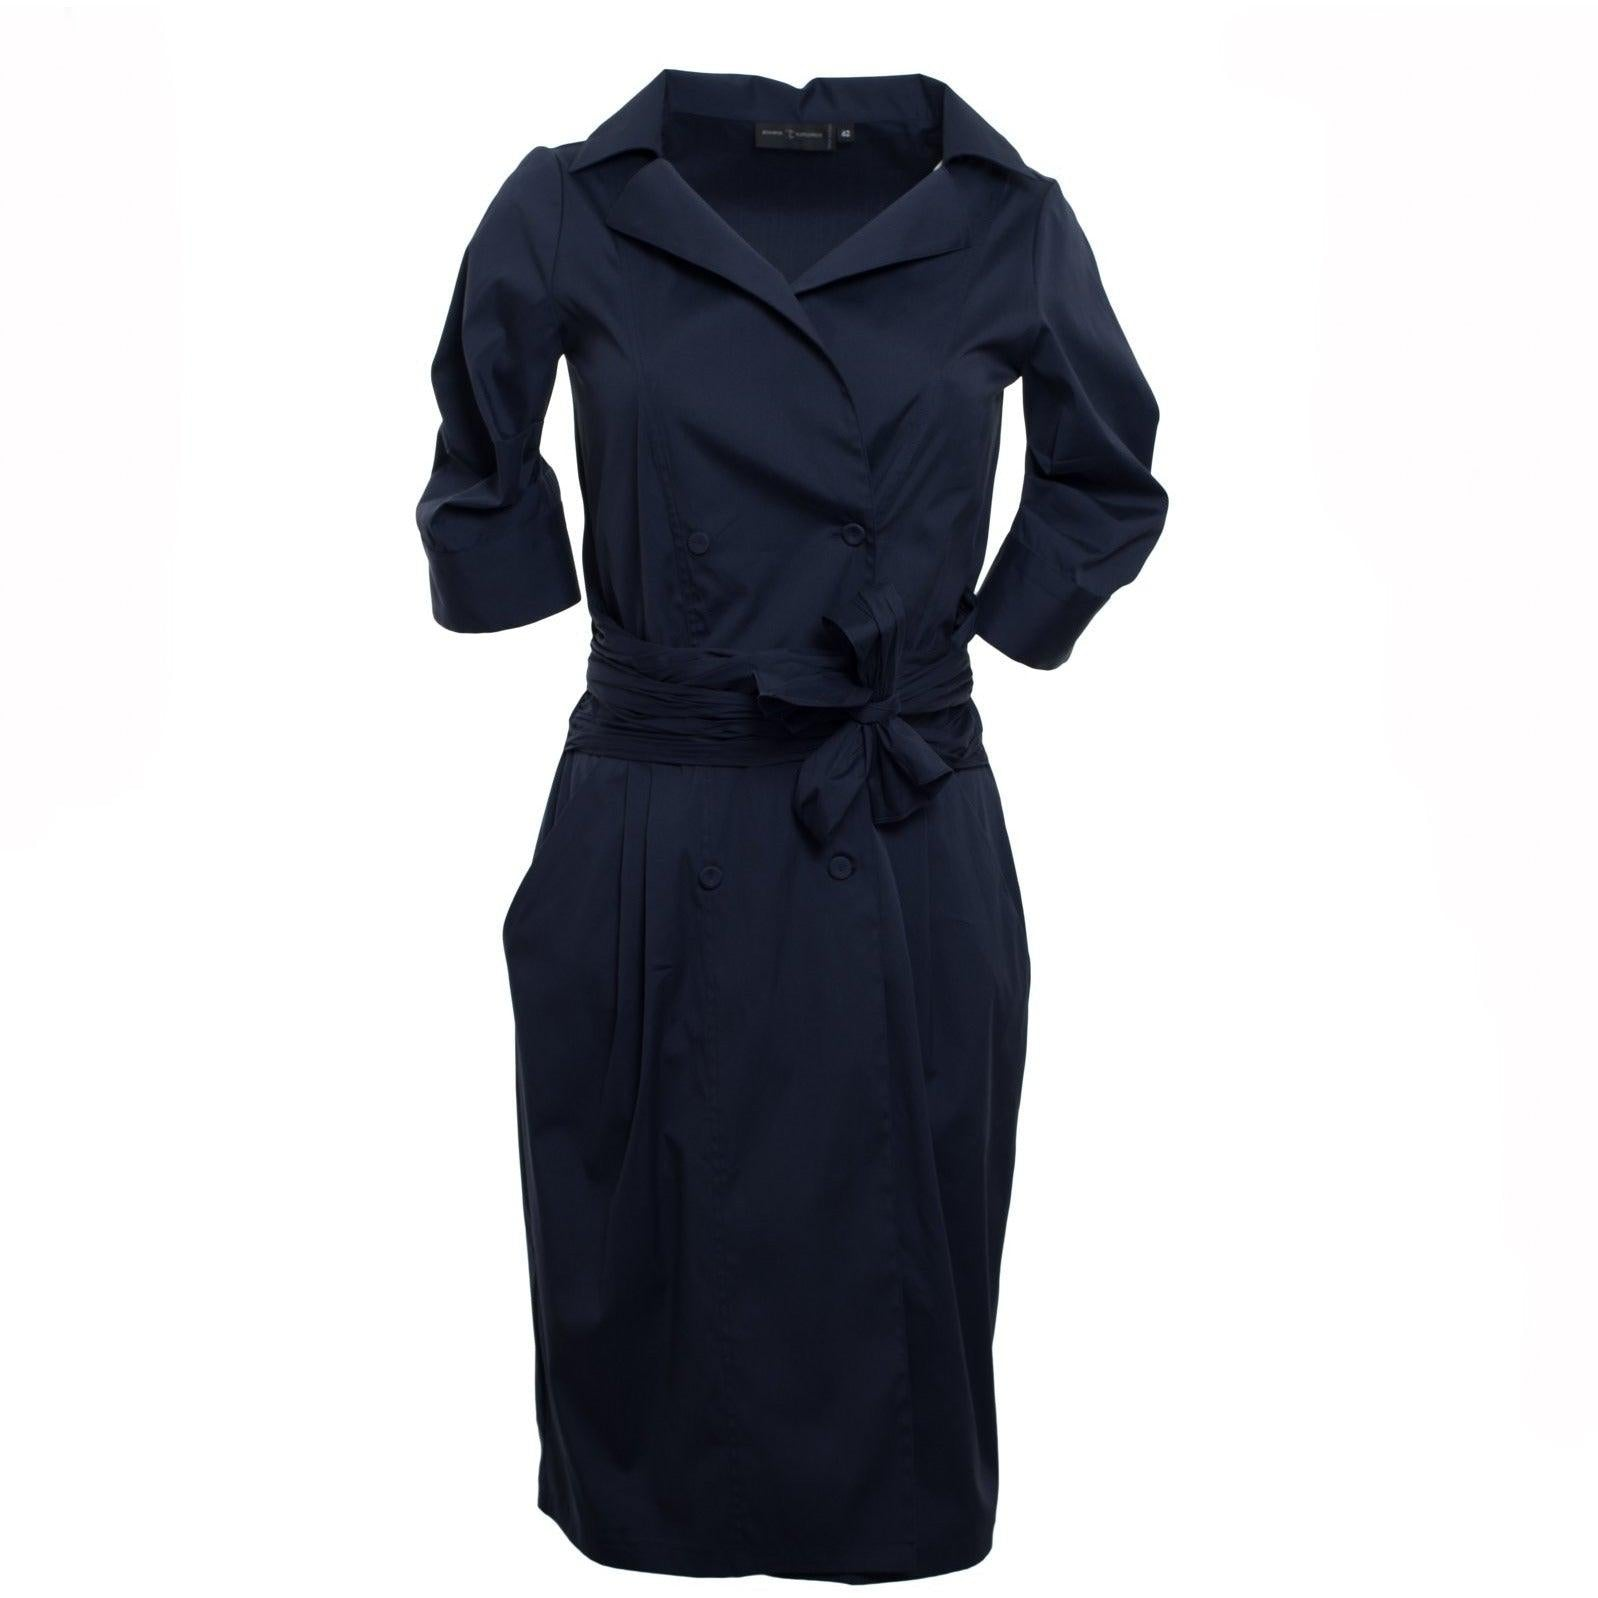 Jennifer Tattanelli crafted in Florence this women dress. A vibrant blue poplin stretch-cotton shirtdress, boasts plenty of vintage charm thanks to artfully pleated three-quarter sleeves and a midi-length skirt